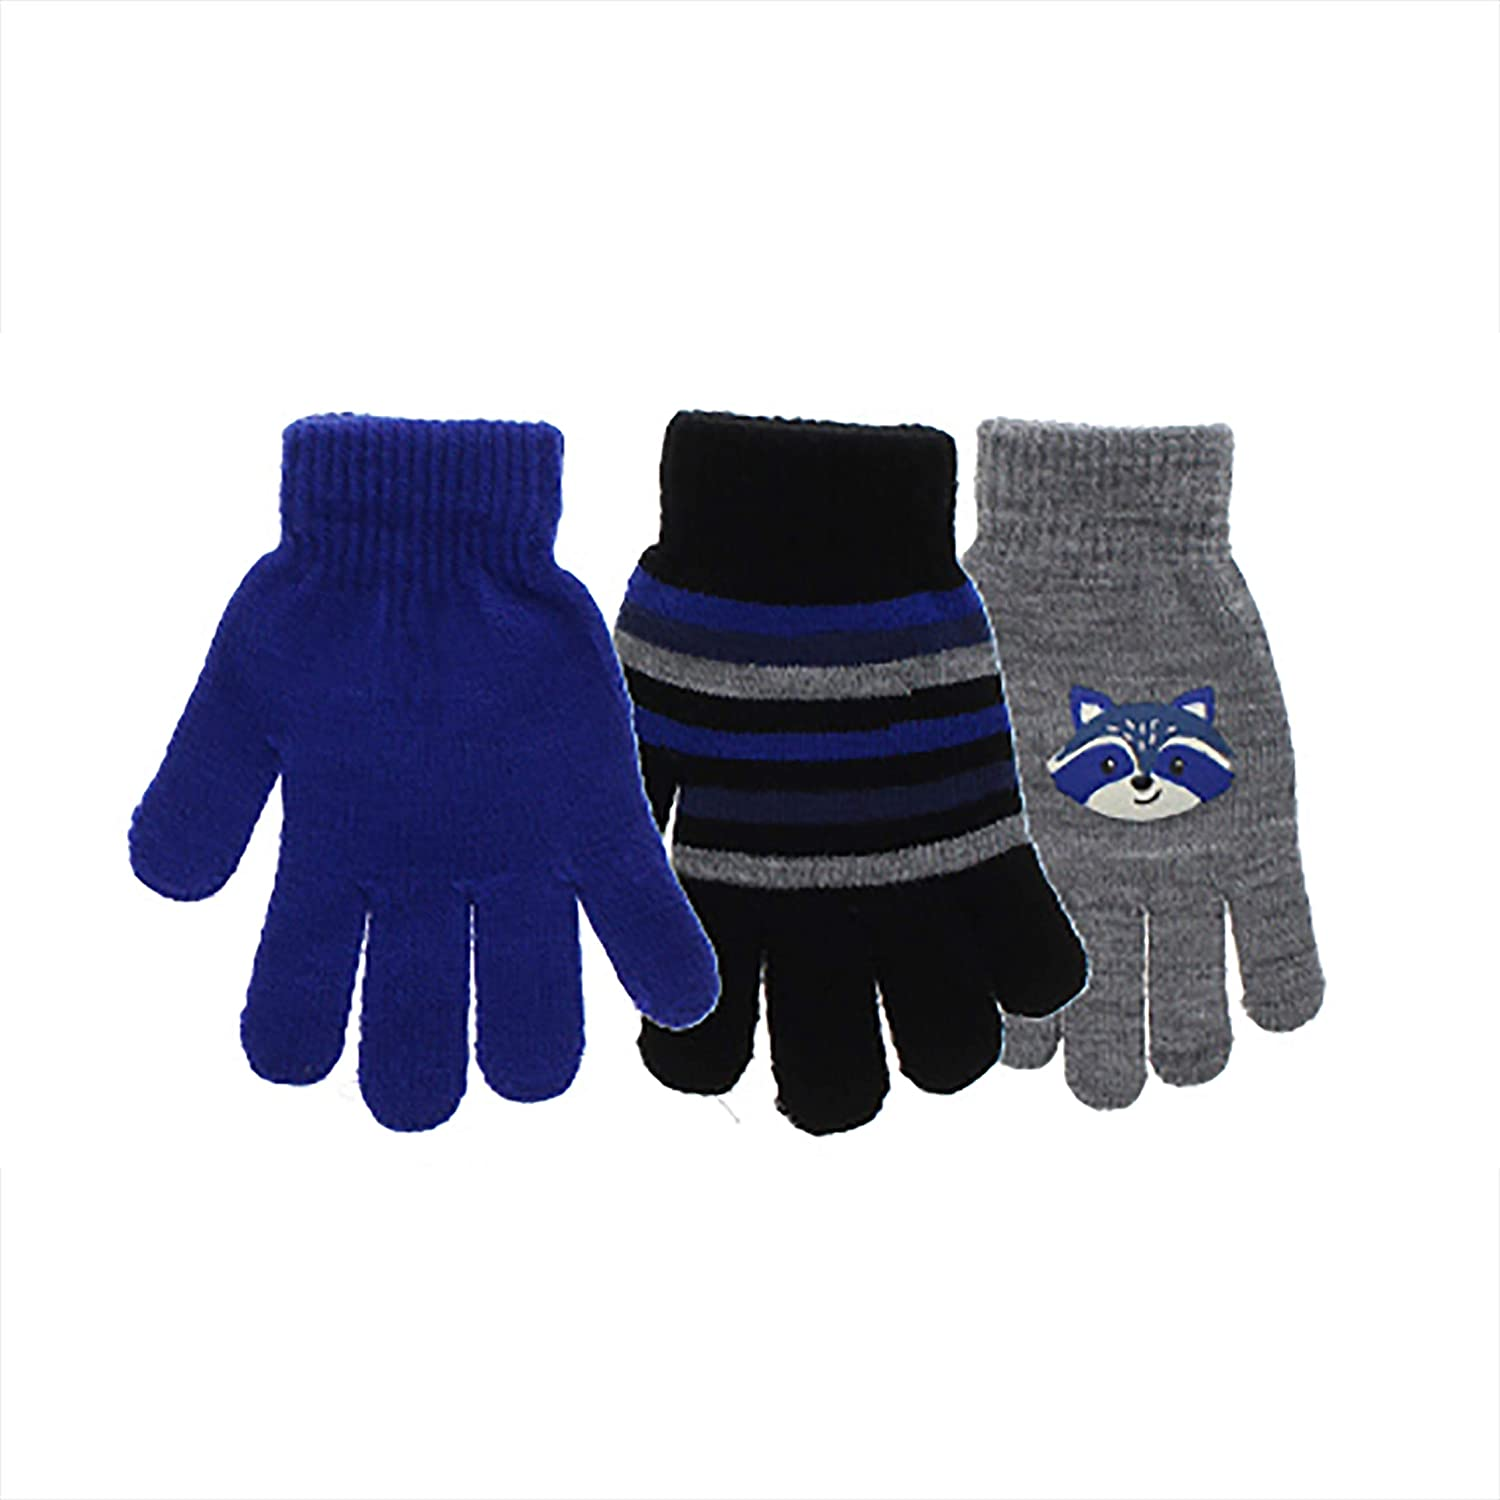 Kid's Cute Striped Warm Winter Mittens Magic Stretch Knit Cold Weather Outdoor Gloves Assorted Multi Pack (Grey and Blue Raccoon): Clothing